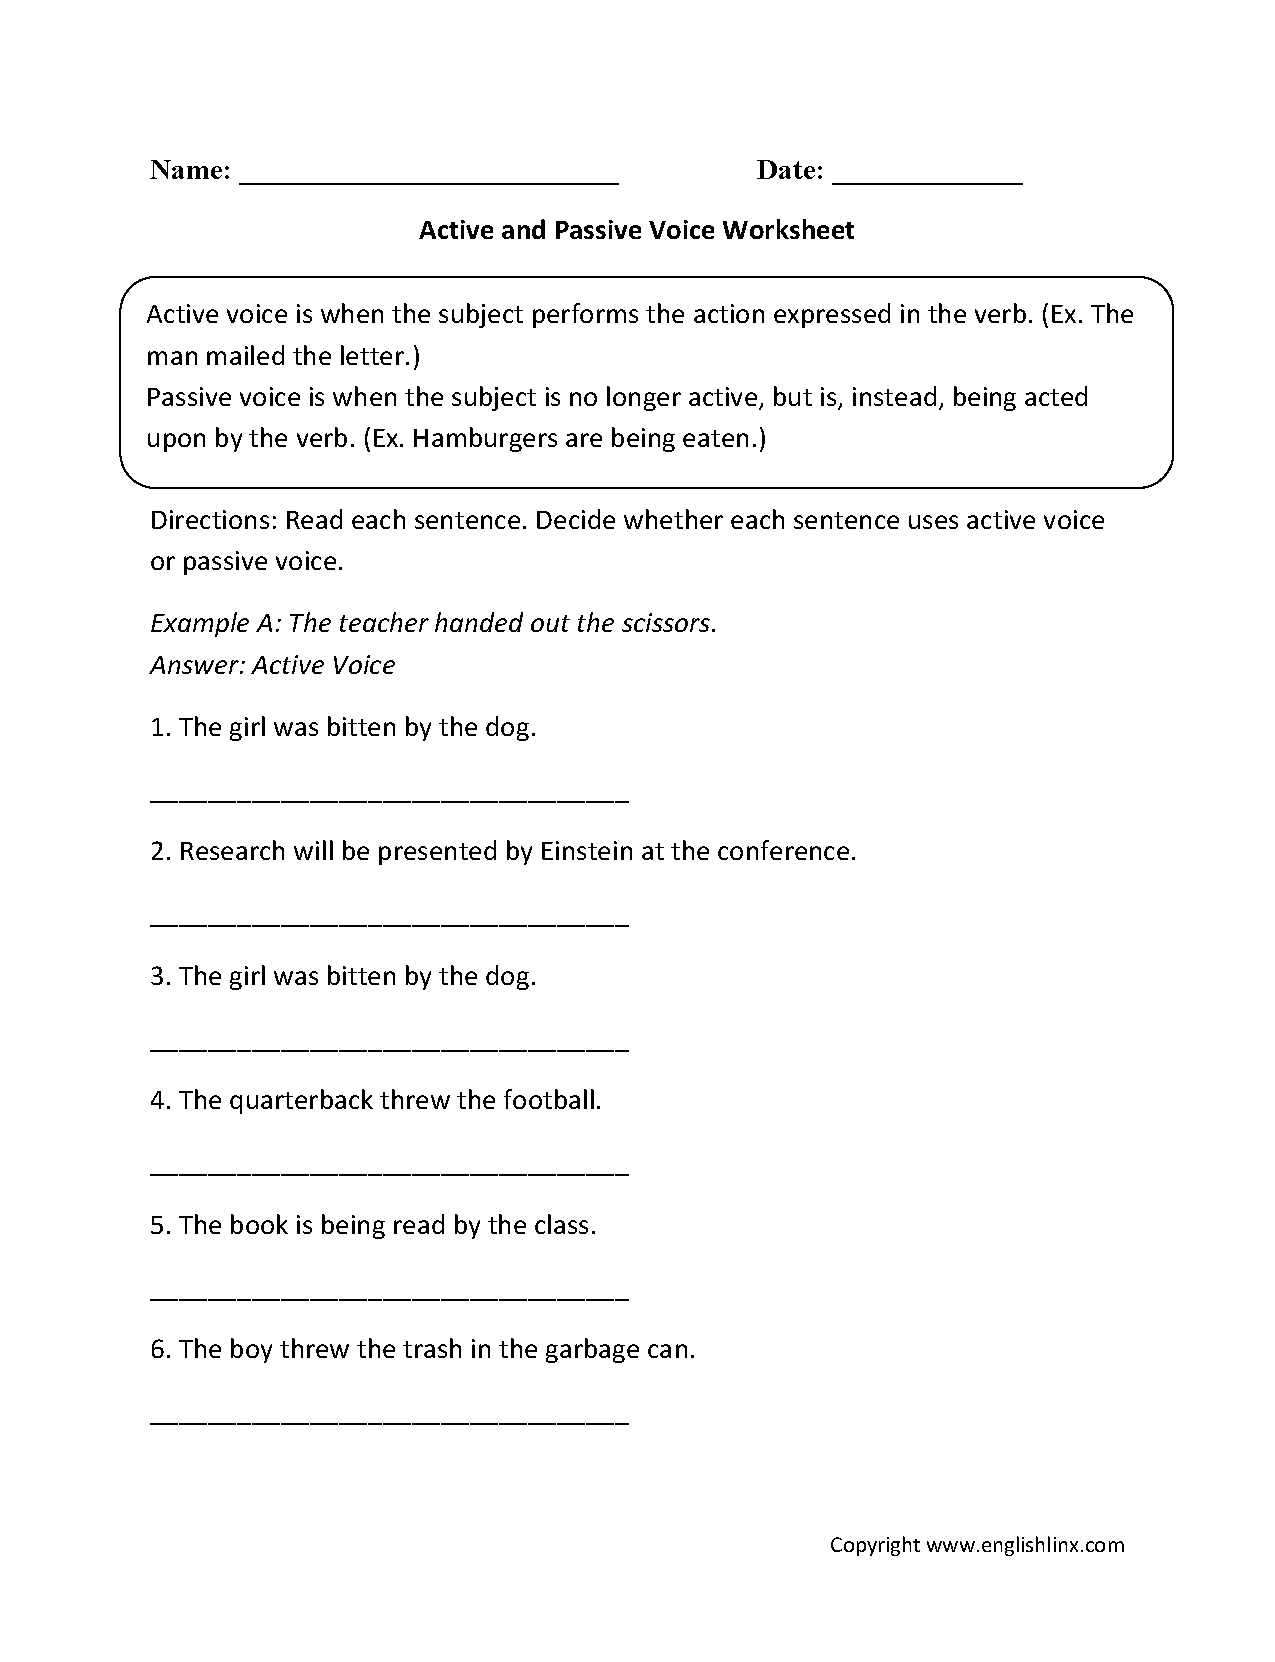 Worksheets Active And Passive Voice Worksheet englishlinx com active and passive voice worksheets worksheet